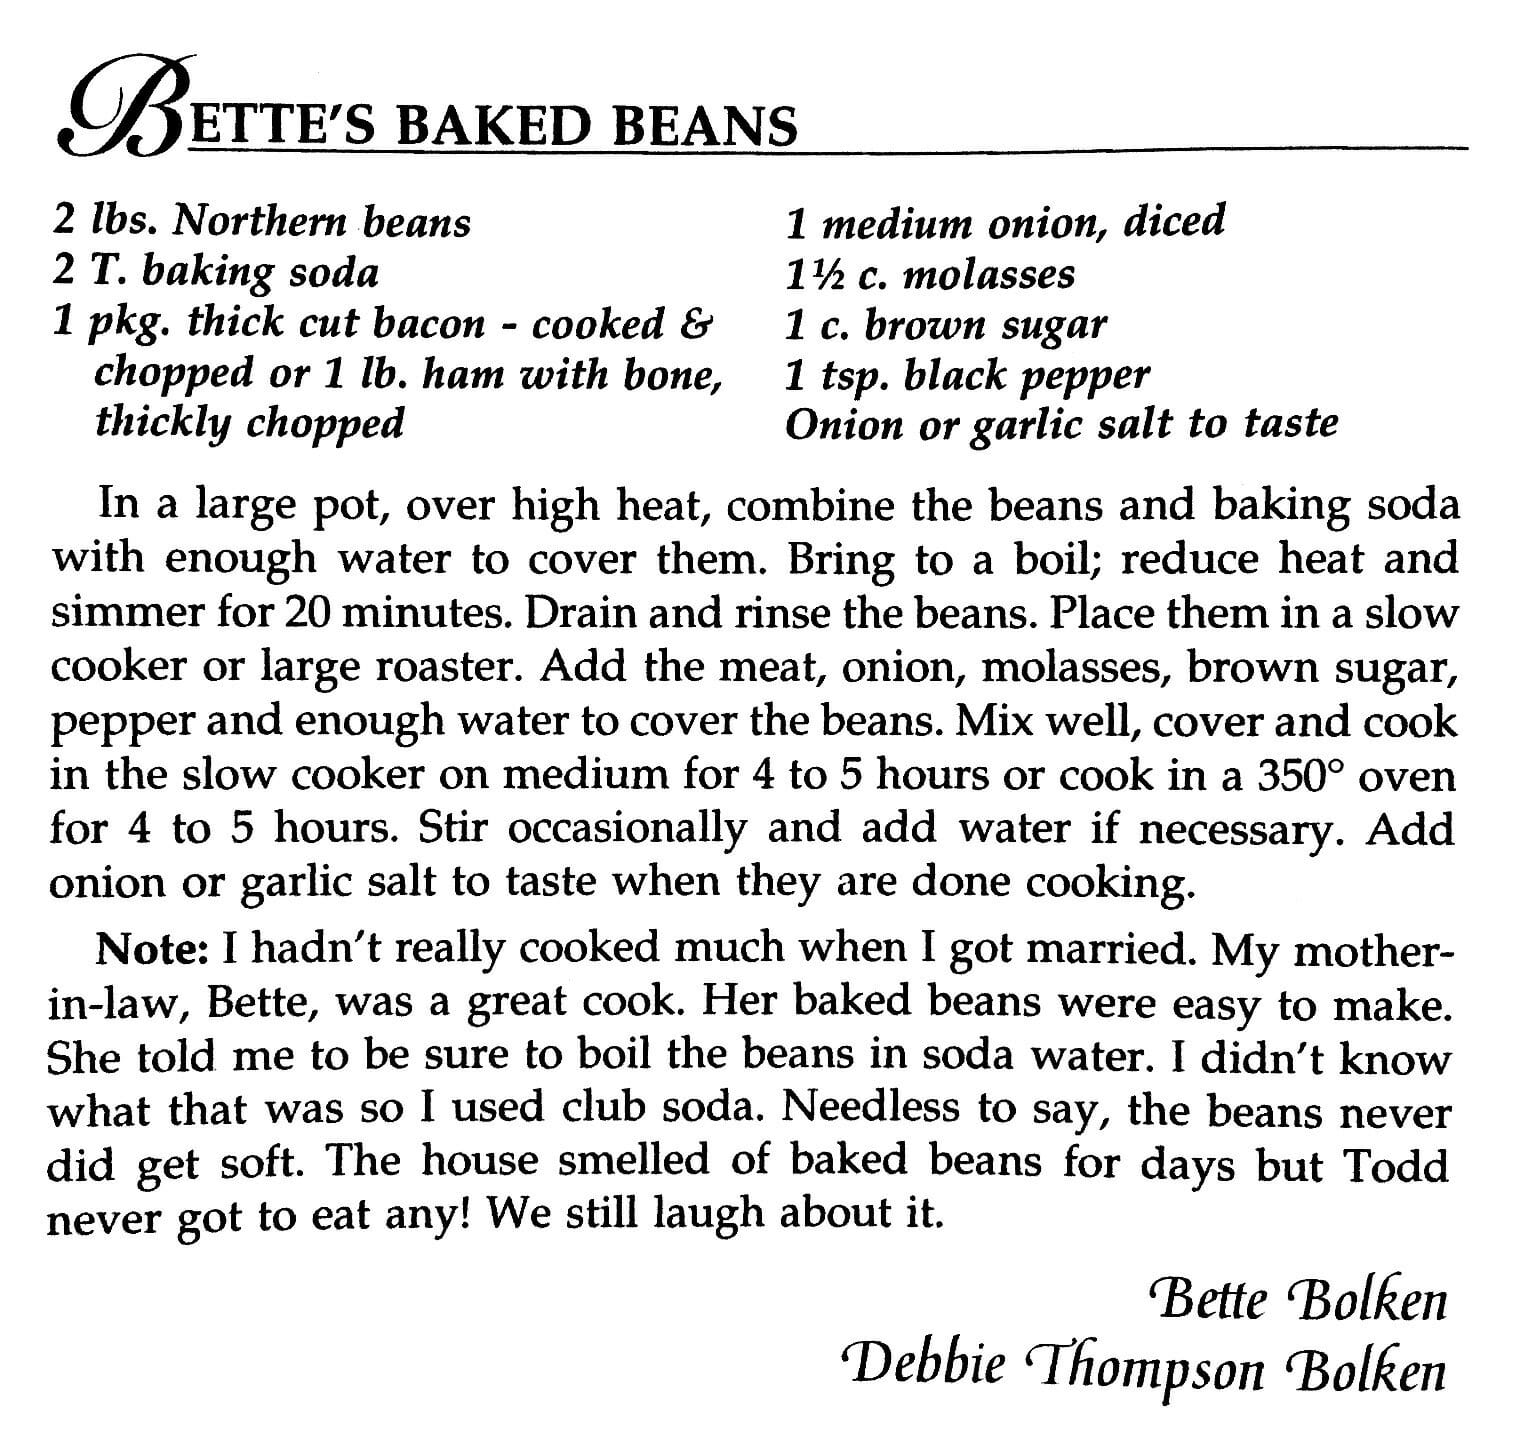 Bette's Baked Beans, A Taste of History Cookbook, Watford City, ND